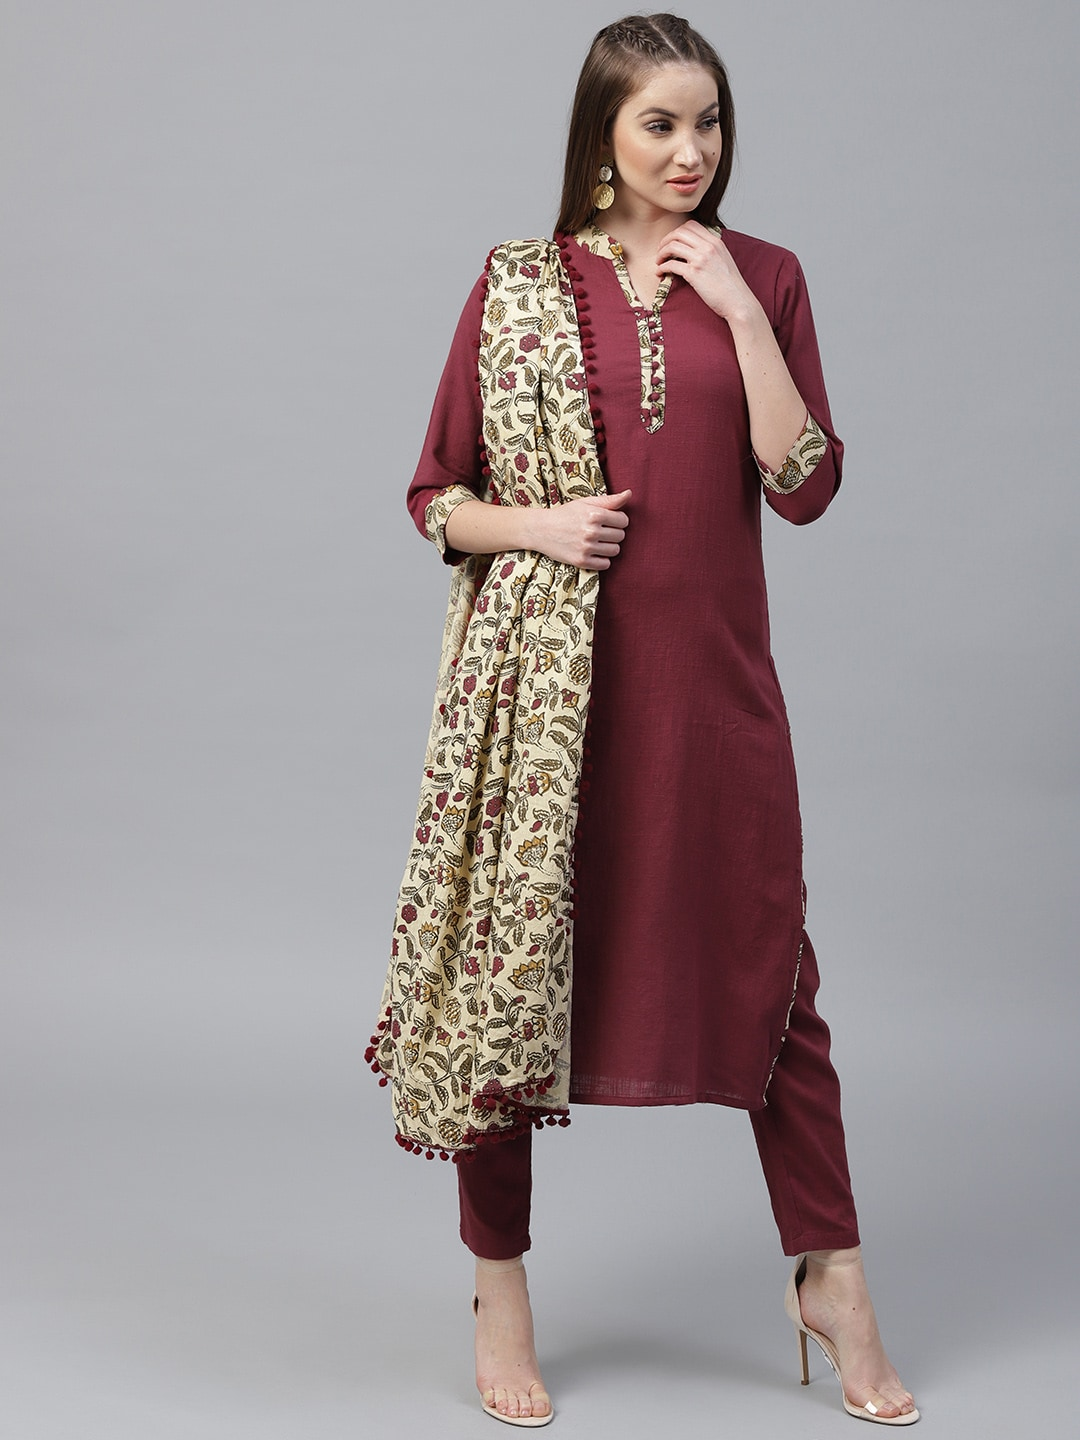 1c90a887a AKS Store - Buy Women Clothing at AKS Online Store